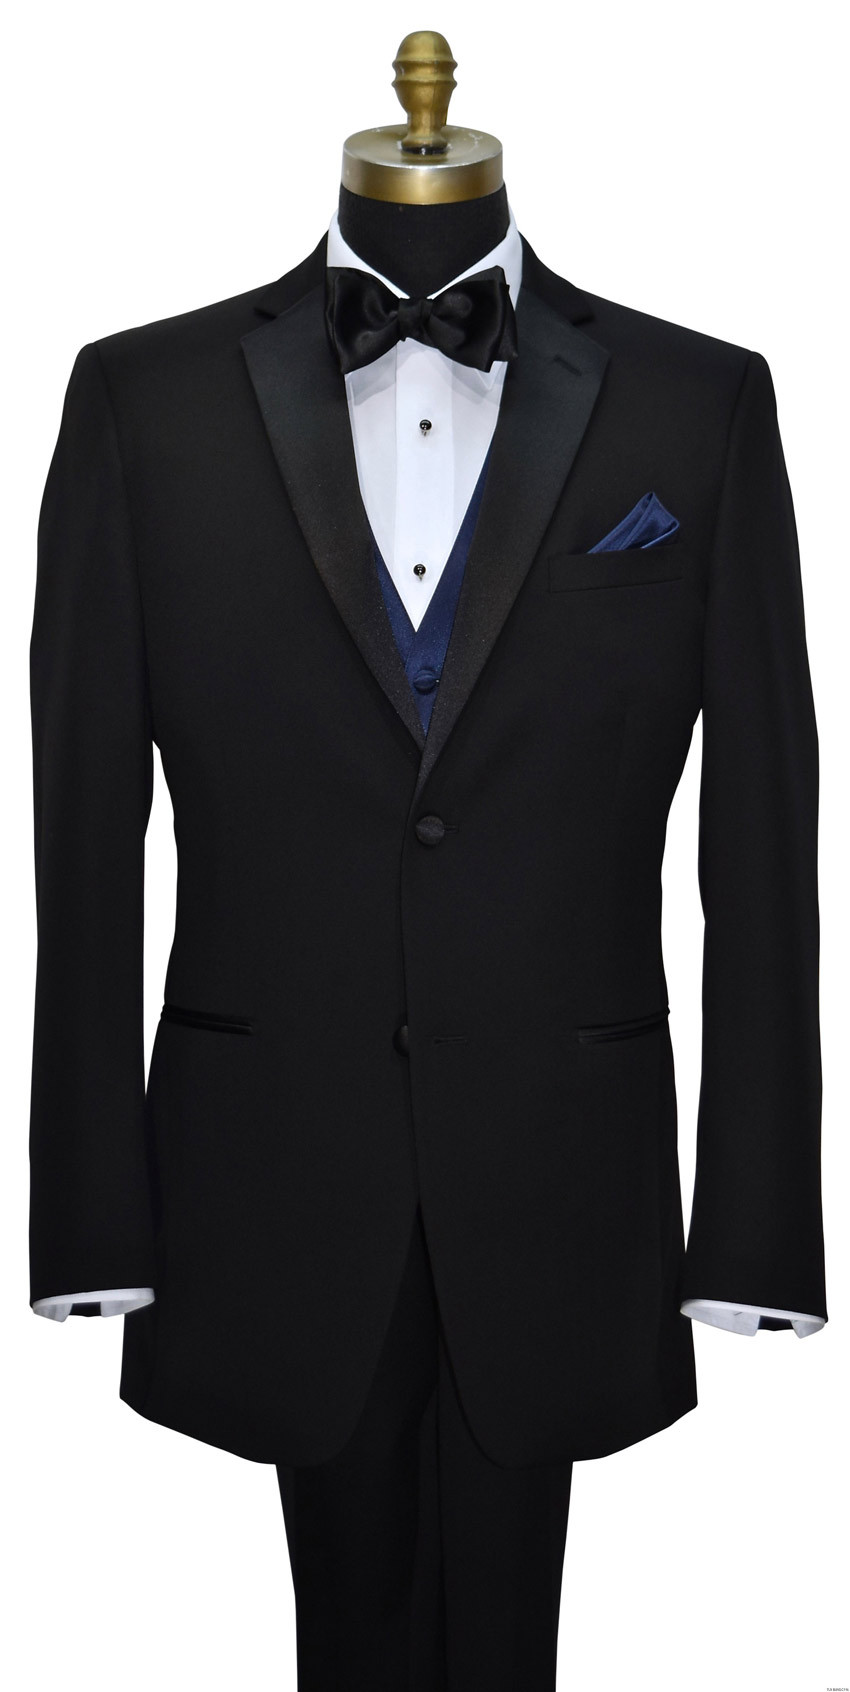 black tuxedo with navy blue vest and bowtie